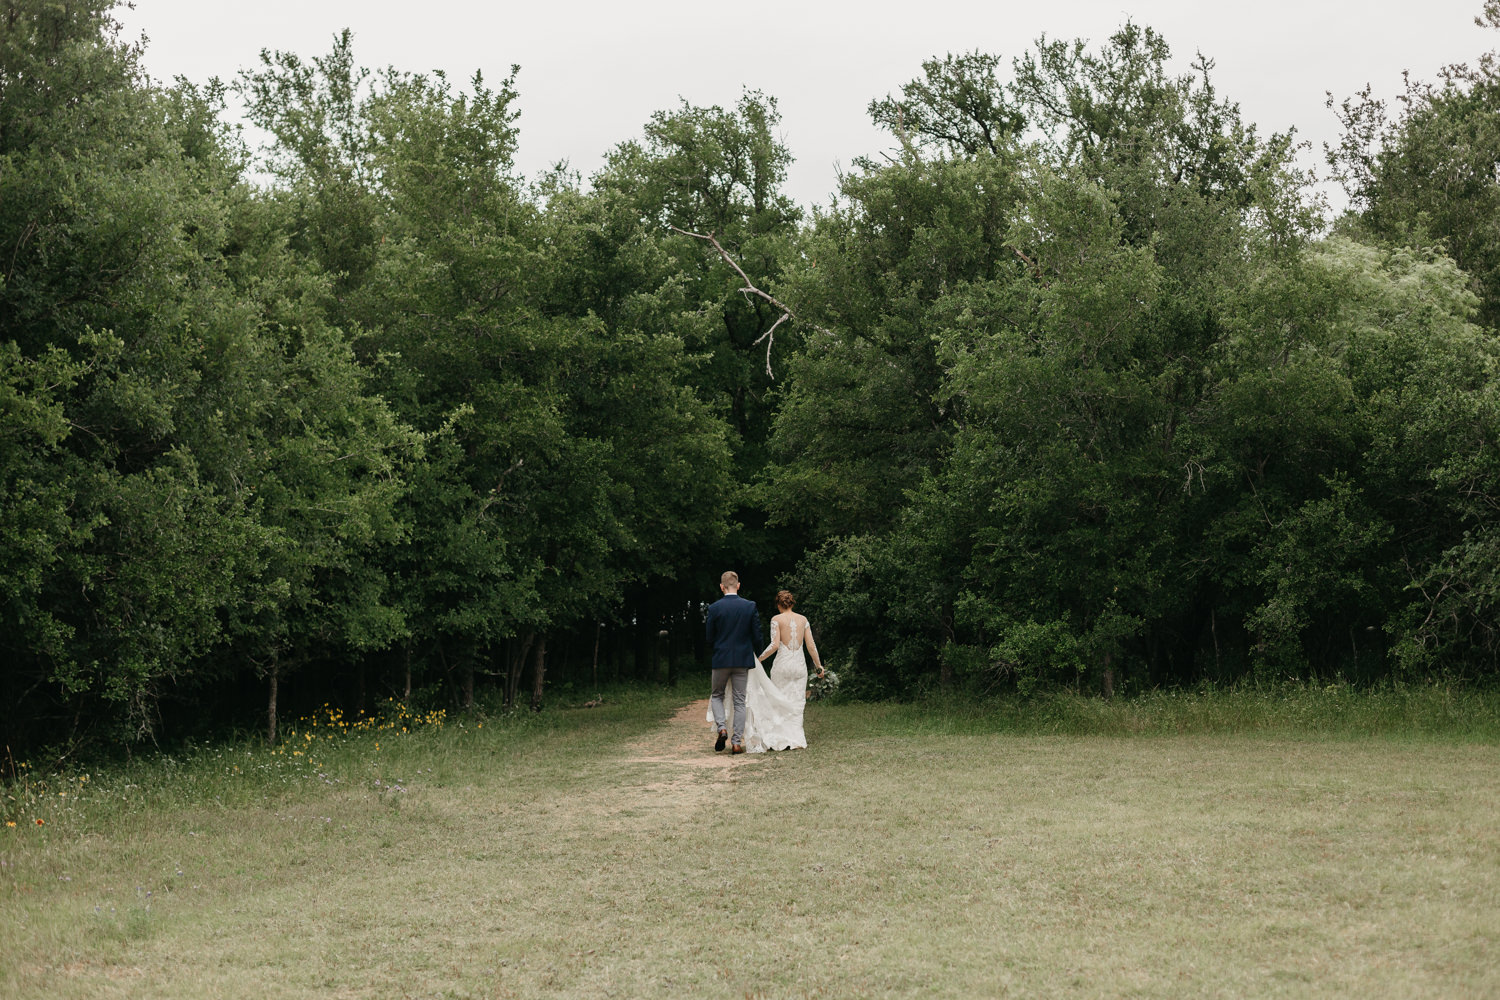 HaileyDylan_Austin Elopement Photographer Austin Wedding Photographer-98.jpg